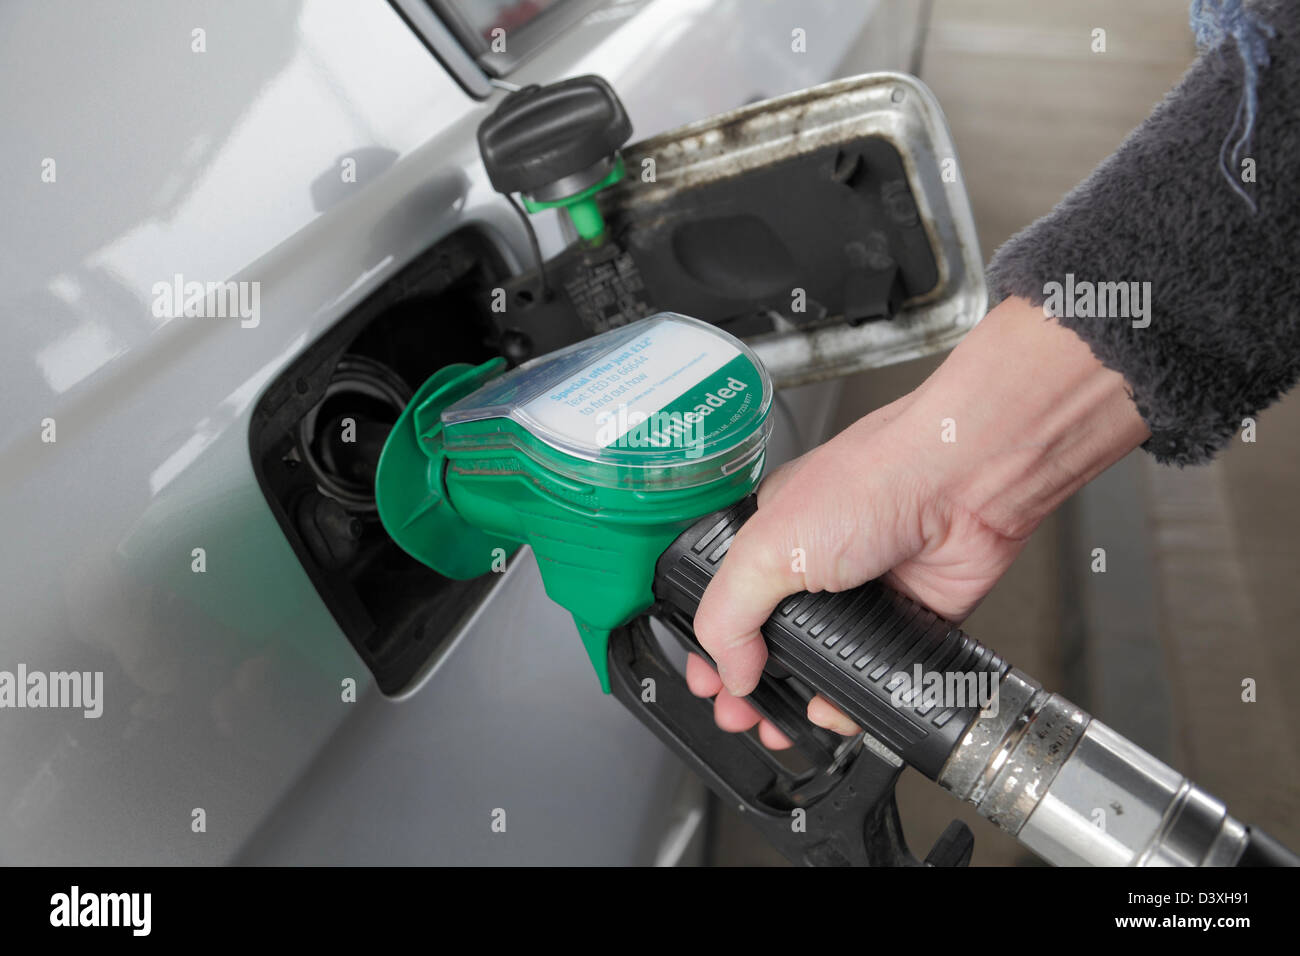 A person filling a car with unleaded petrol, Scotland, UK - Stock Image